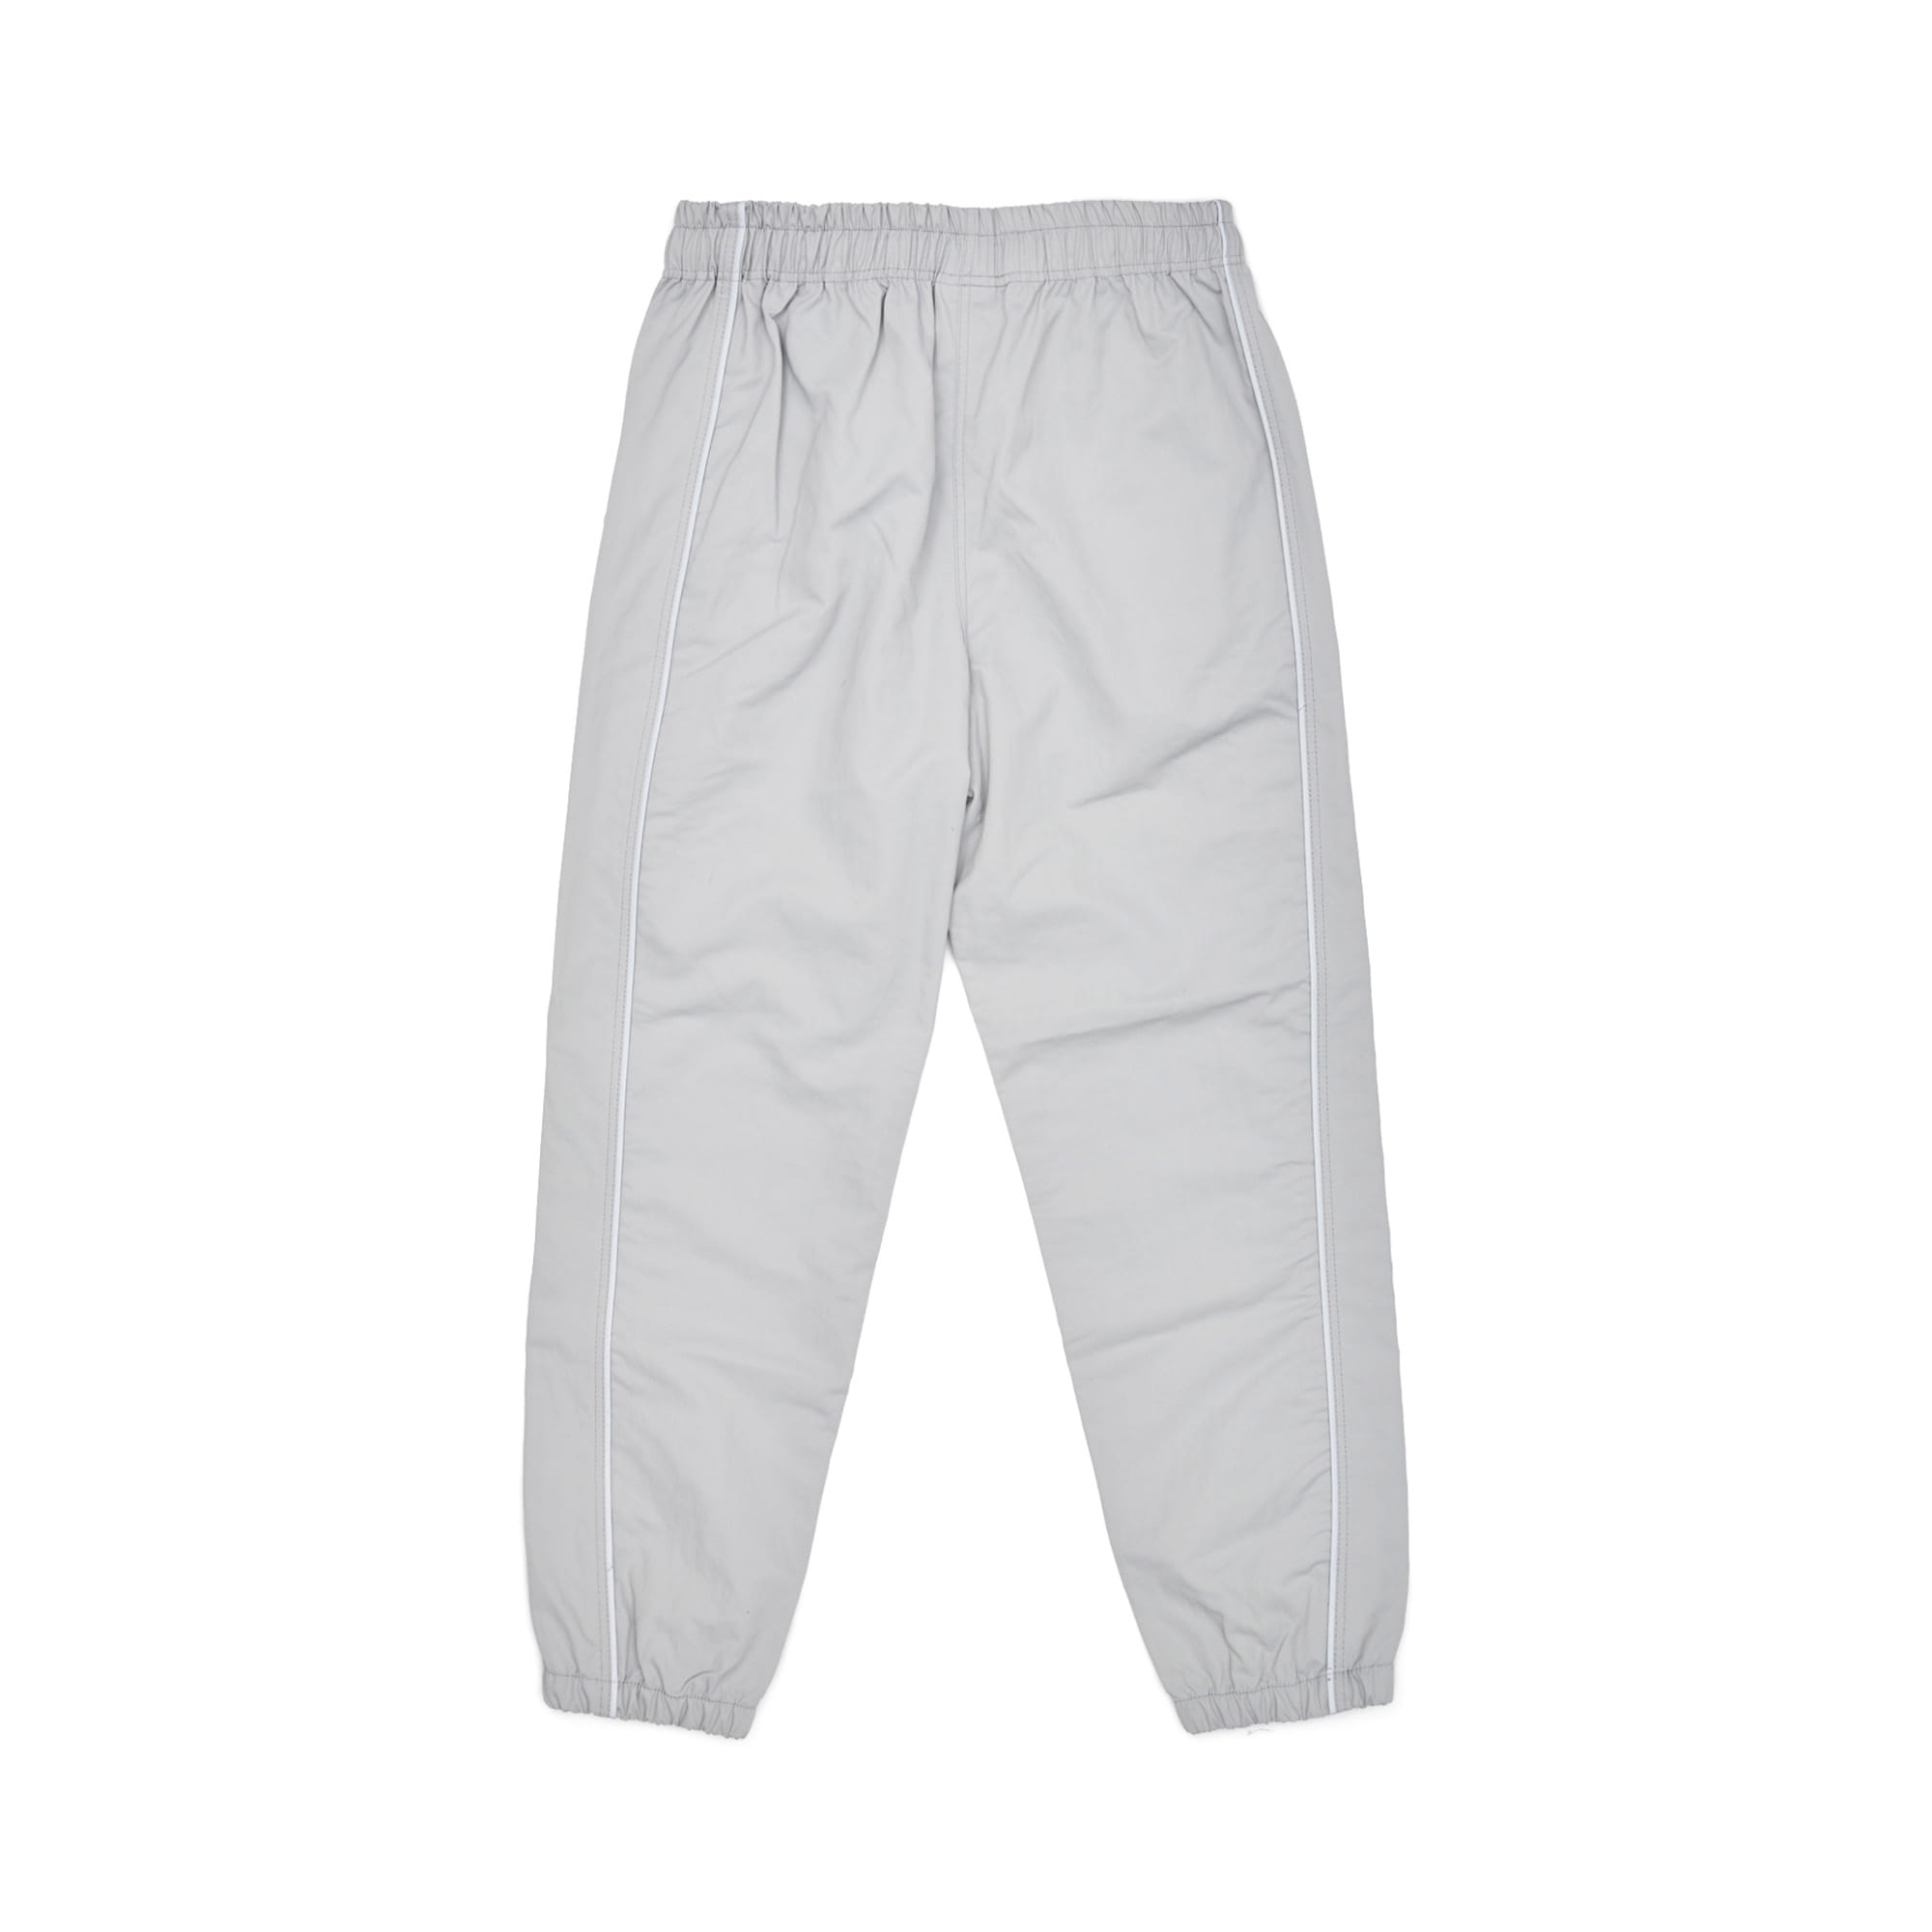 BSR WASHING TWILL JOGGER PANTS GRAY